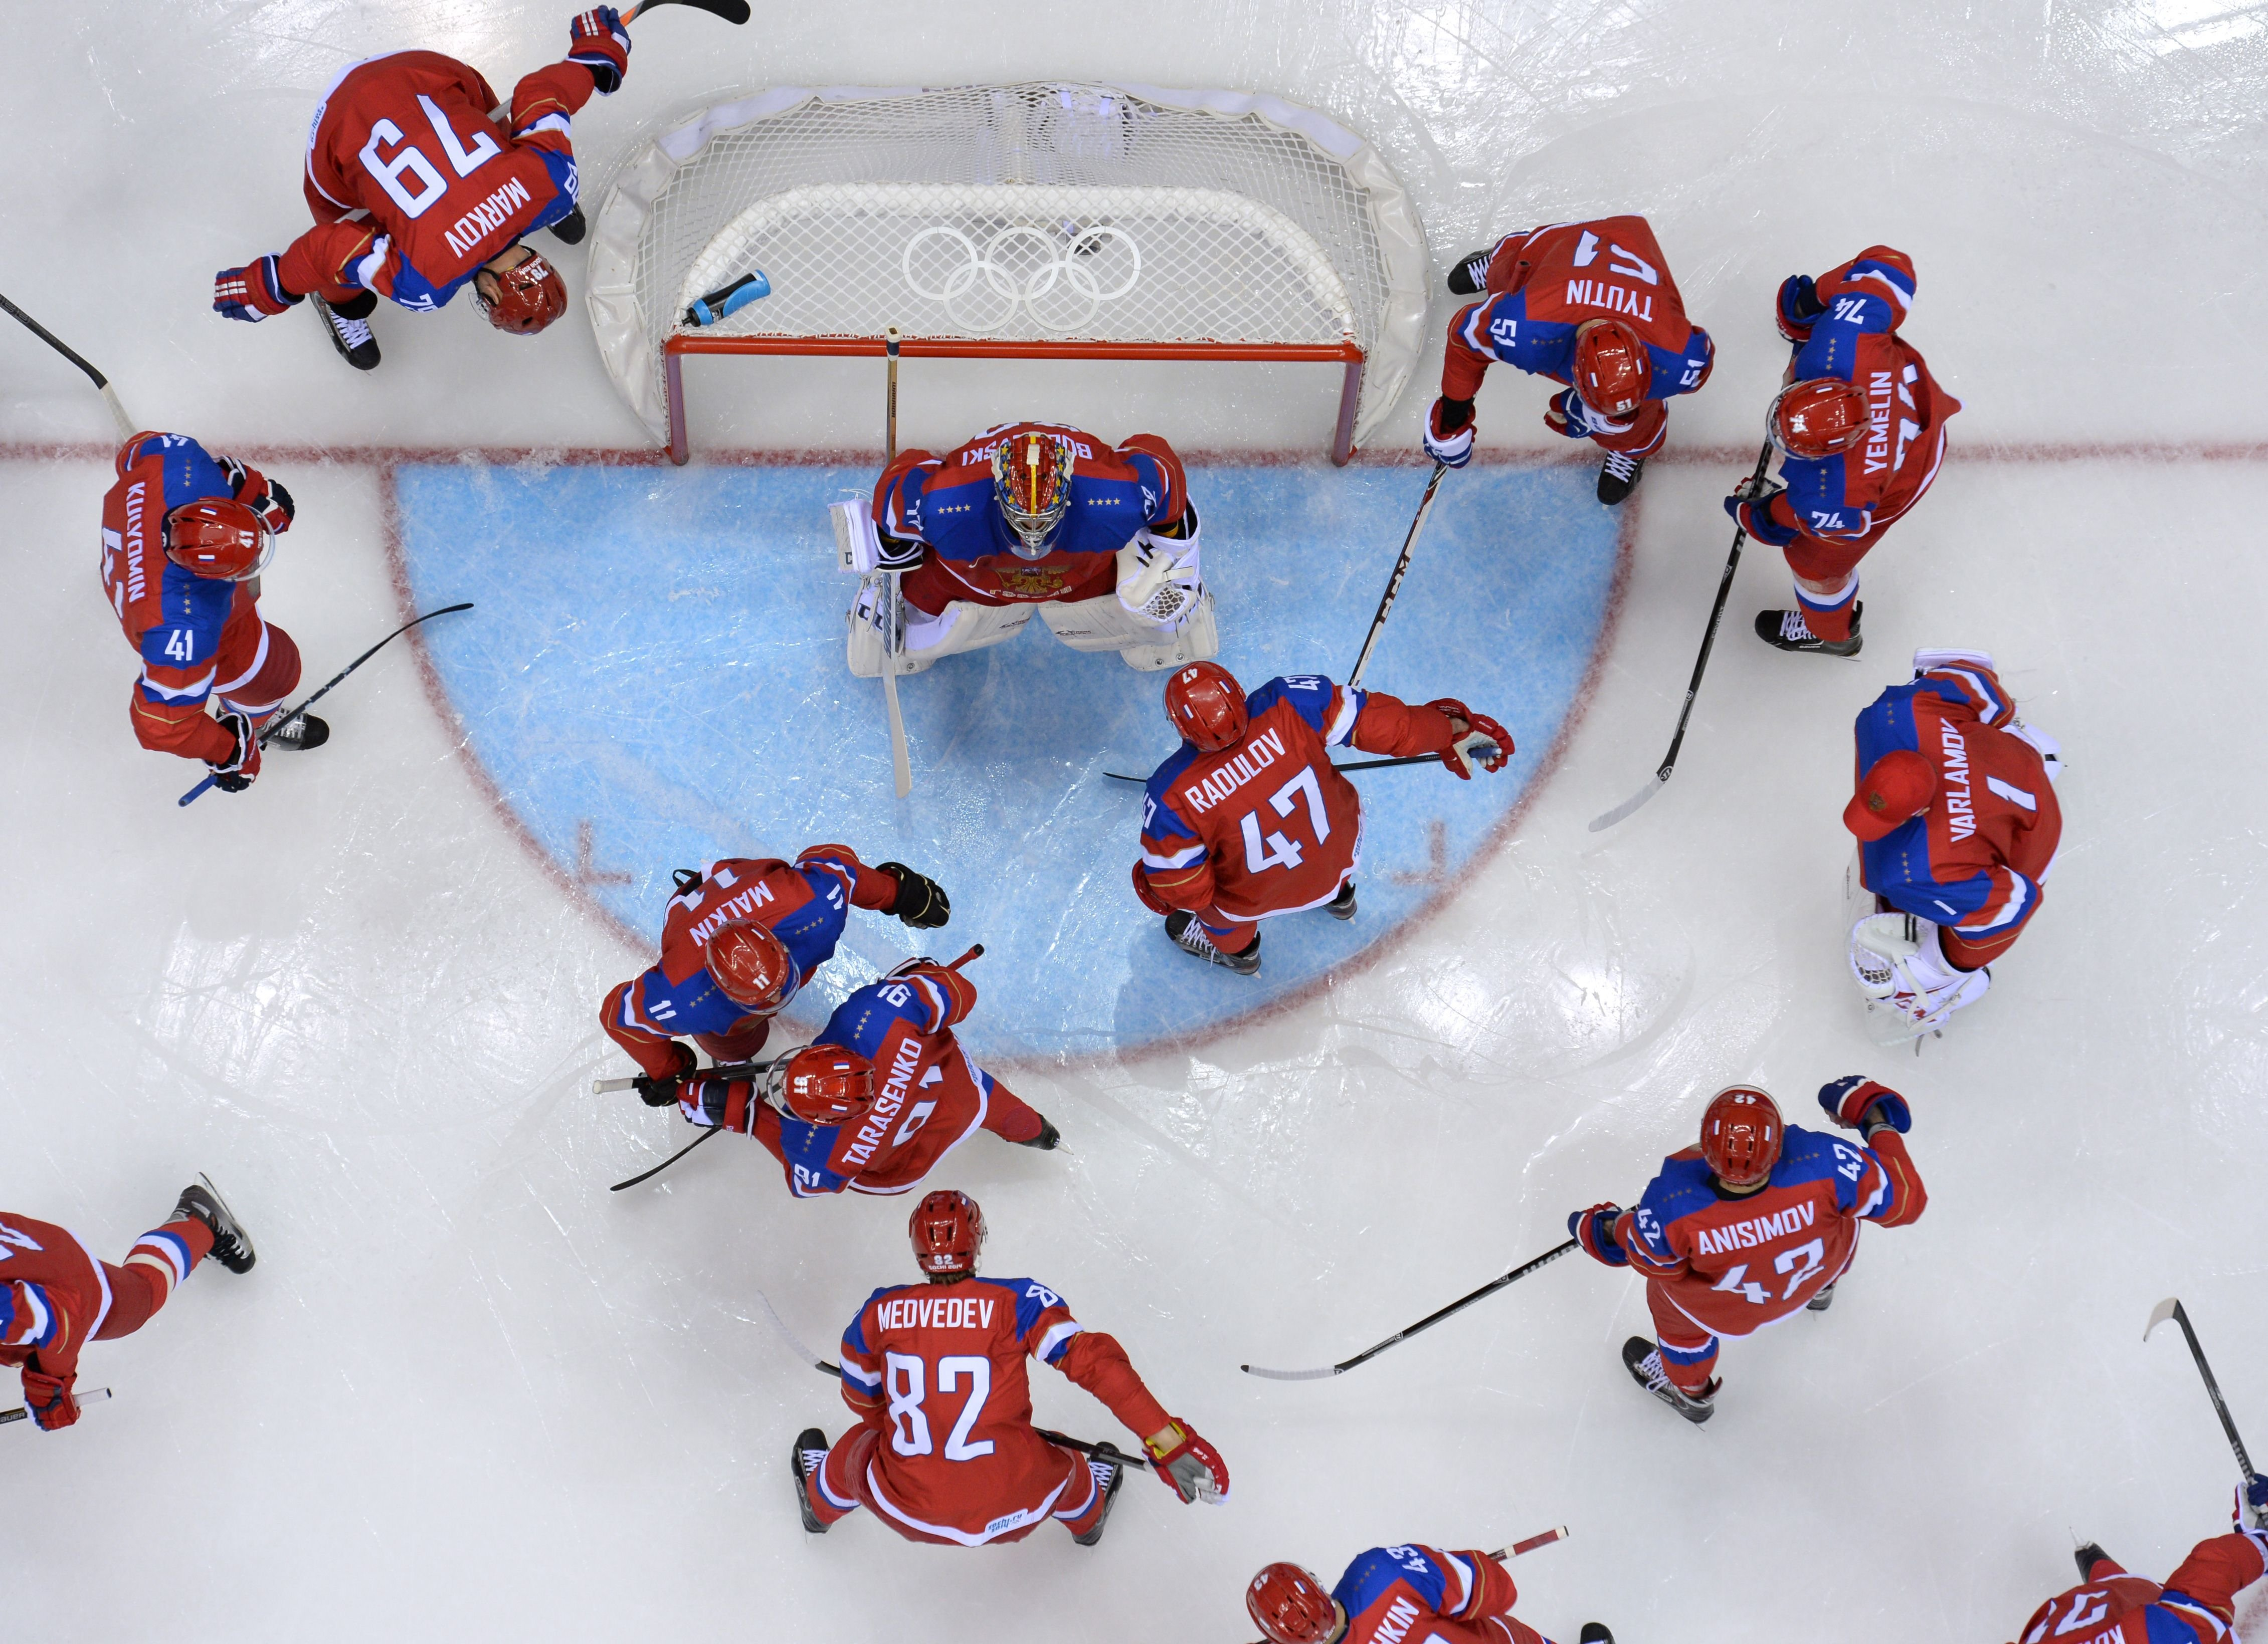 Russia's players gather before the start of the Men's Ice Hockey play-offs qualification match Russia vs Norway at the Bolshoy Ice Dome.